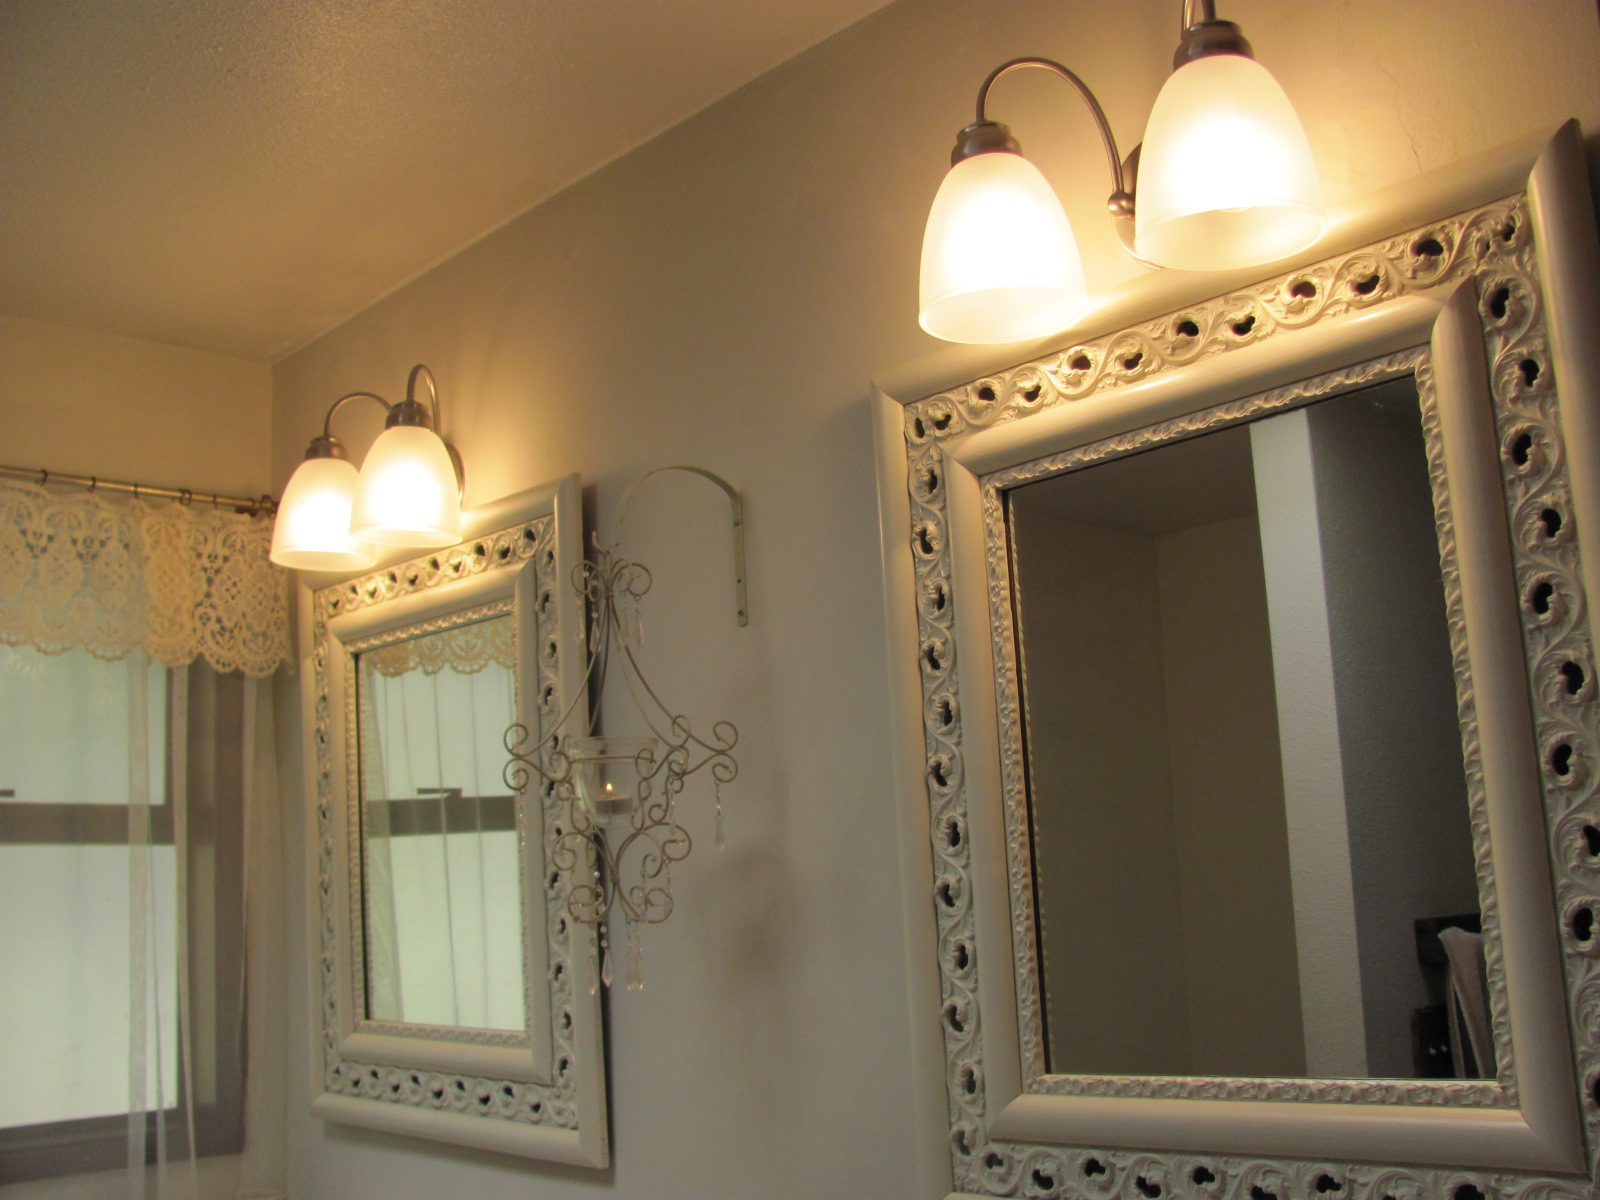 inspiring bathroom with cool lowes bathroom lighting plus double mirror on the wall ideas